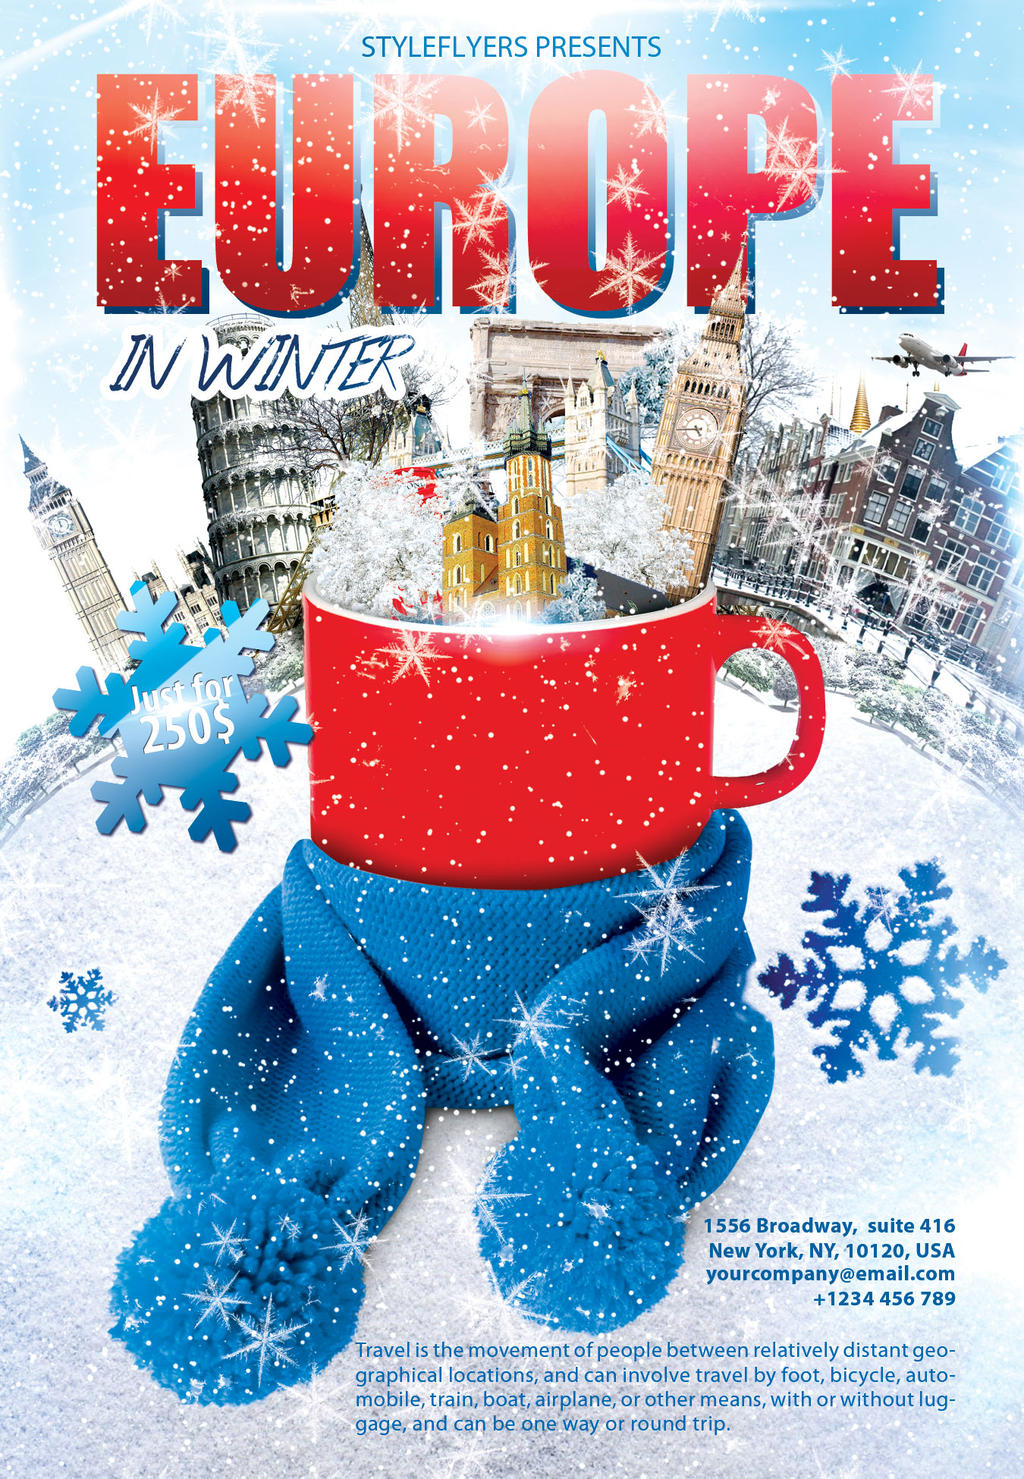 europe in winter travel flyer by styleflyers on europe in winter travel flyer by styleflyers